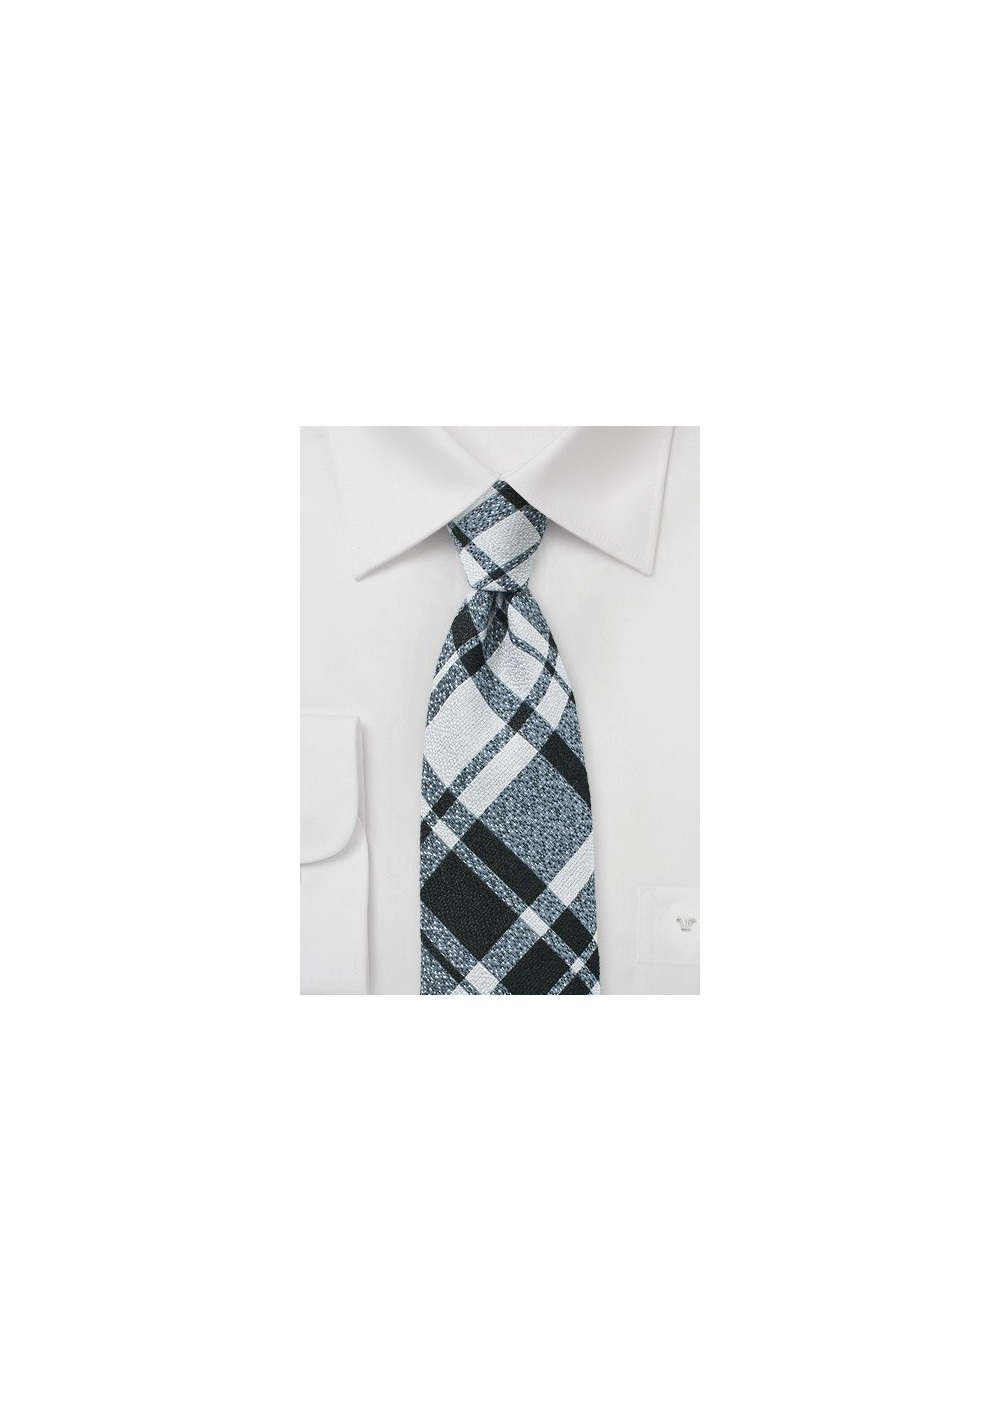 Wool Plaid Tie in Silver, Black, and Gray